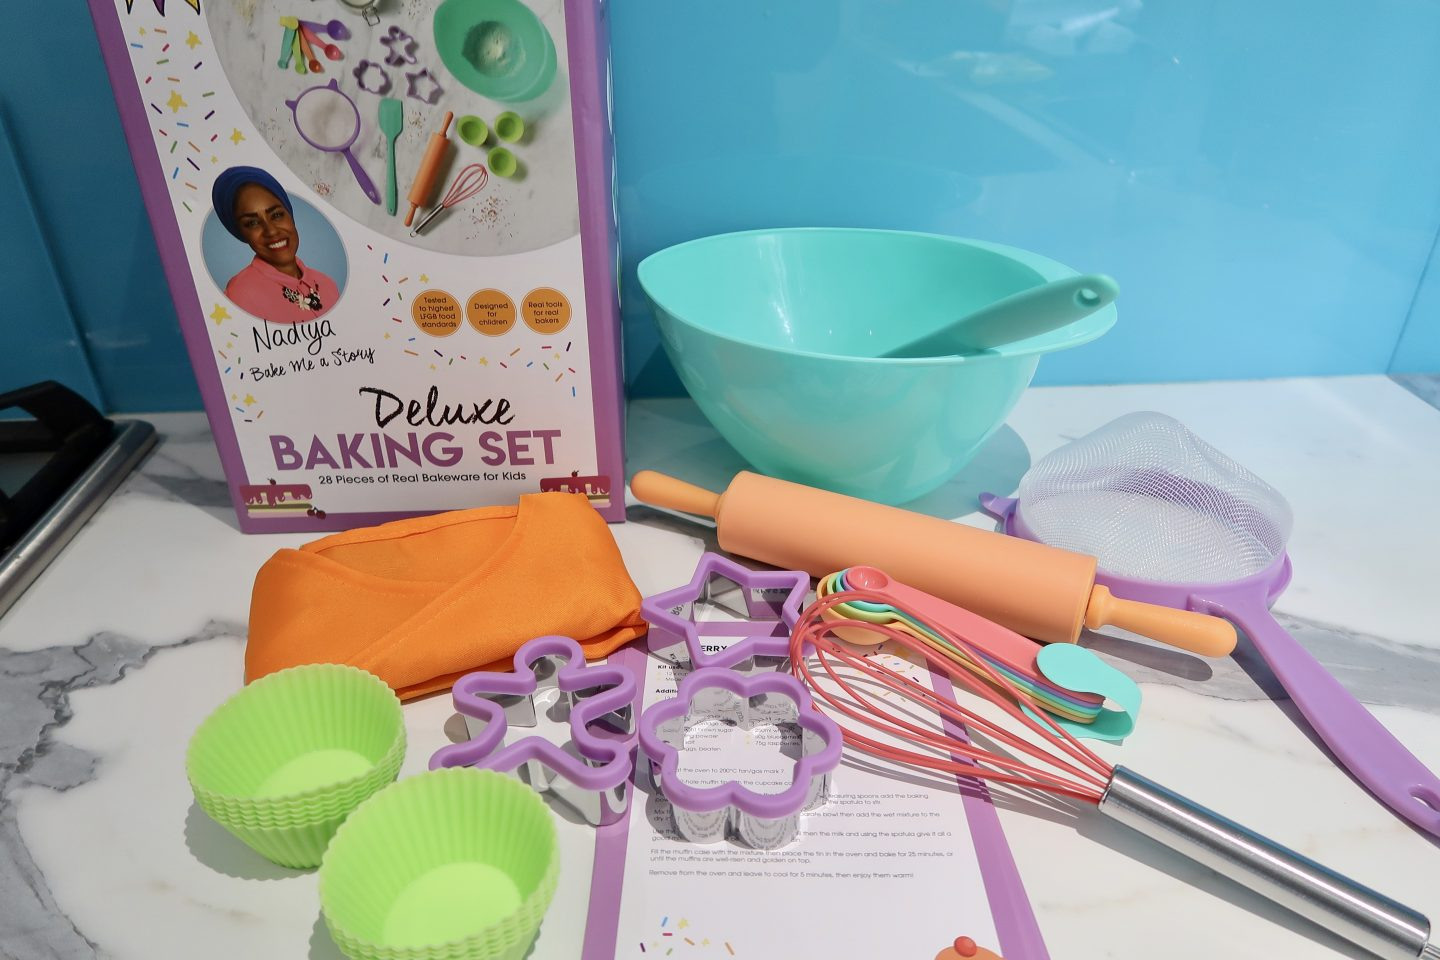 The contents of a Deluxe Baking Set